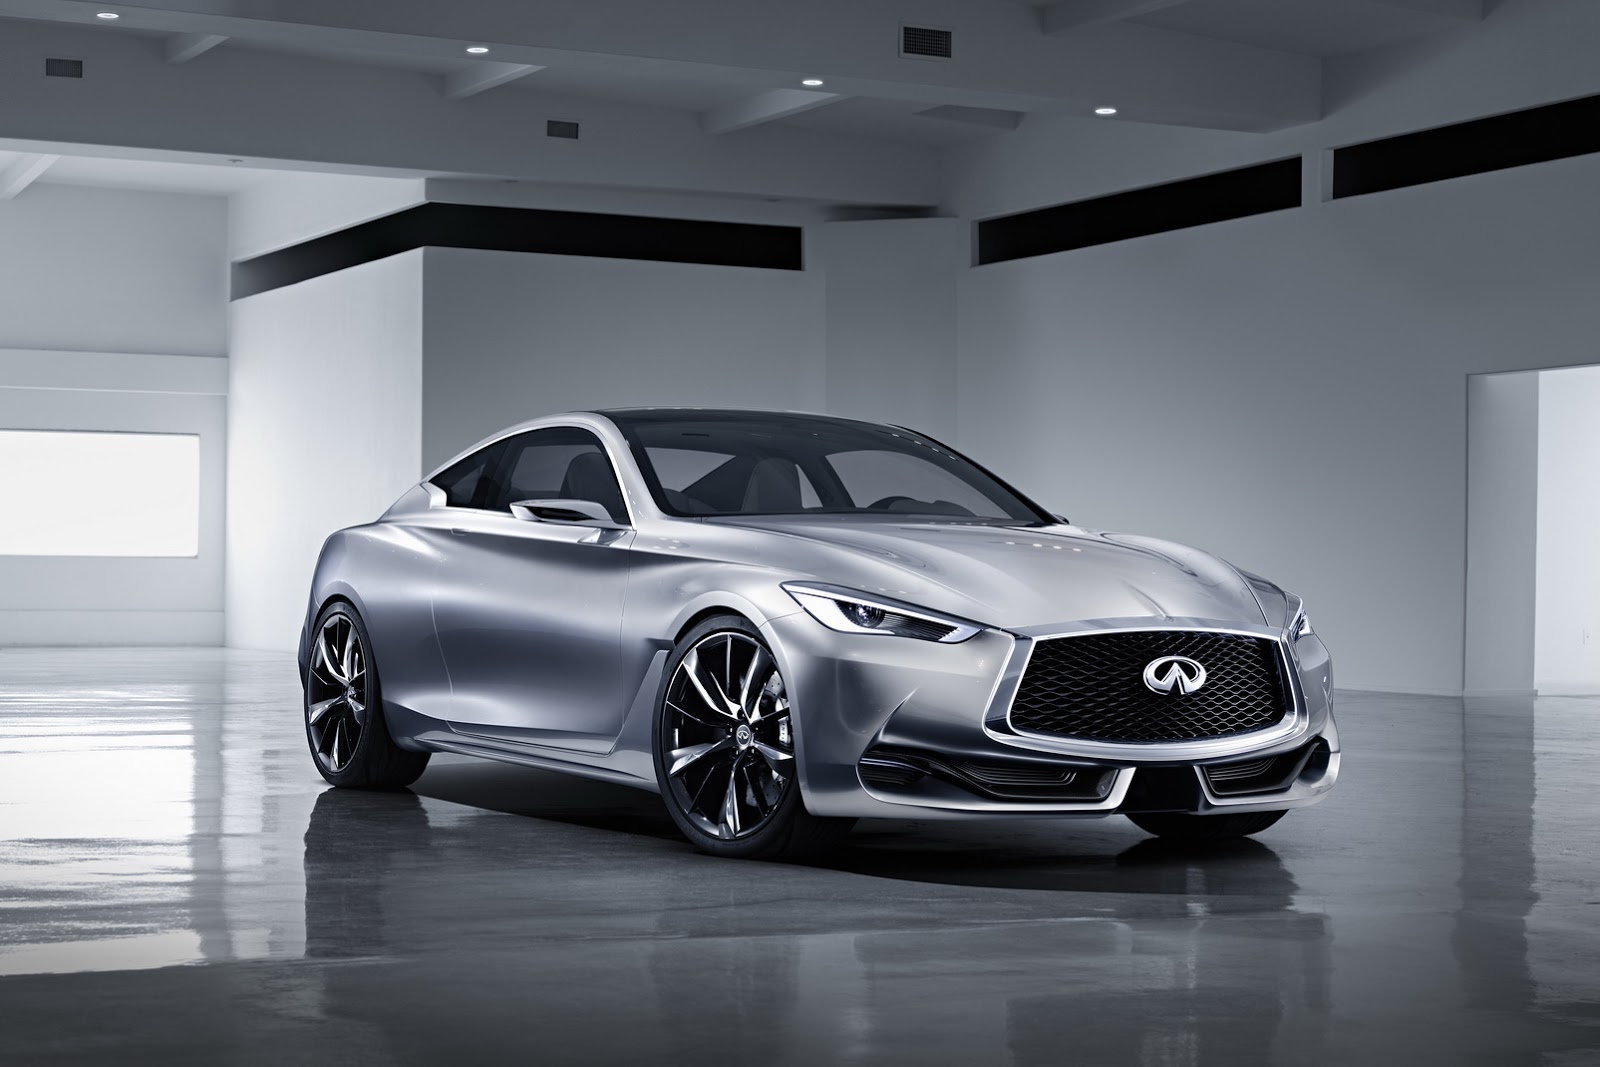 new infiniti q60 coupe concept detailed in 26 fresh photos carscoops. Black Bedroom Furniture Sets. Home Design Ideas